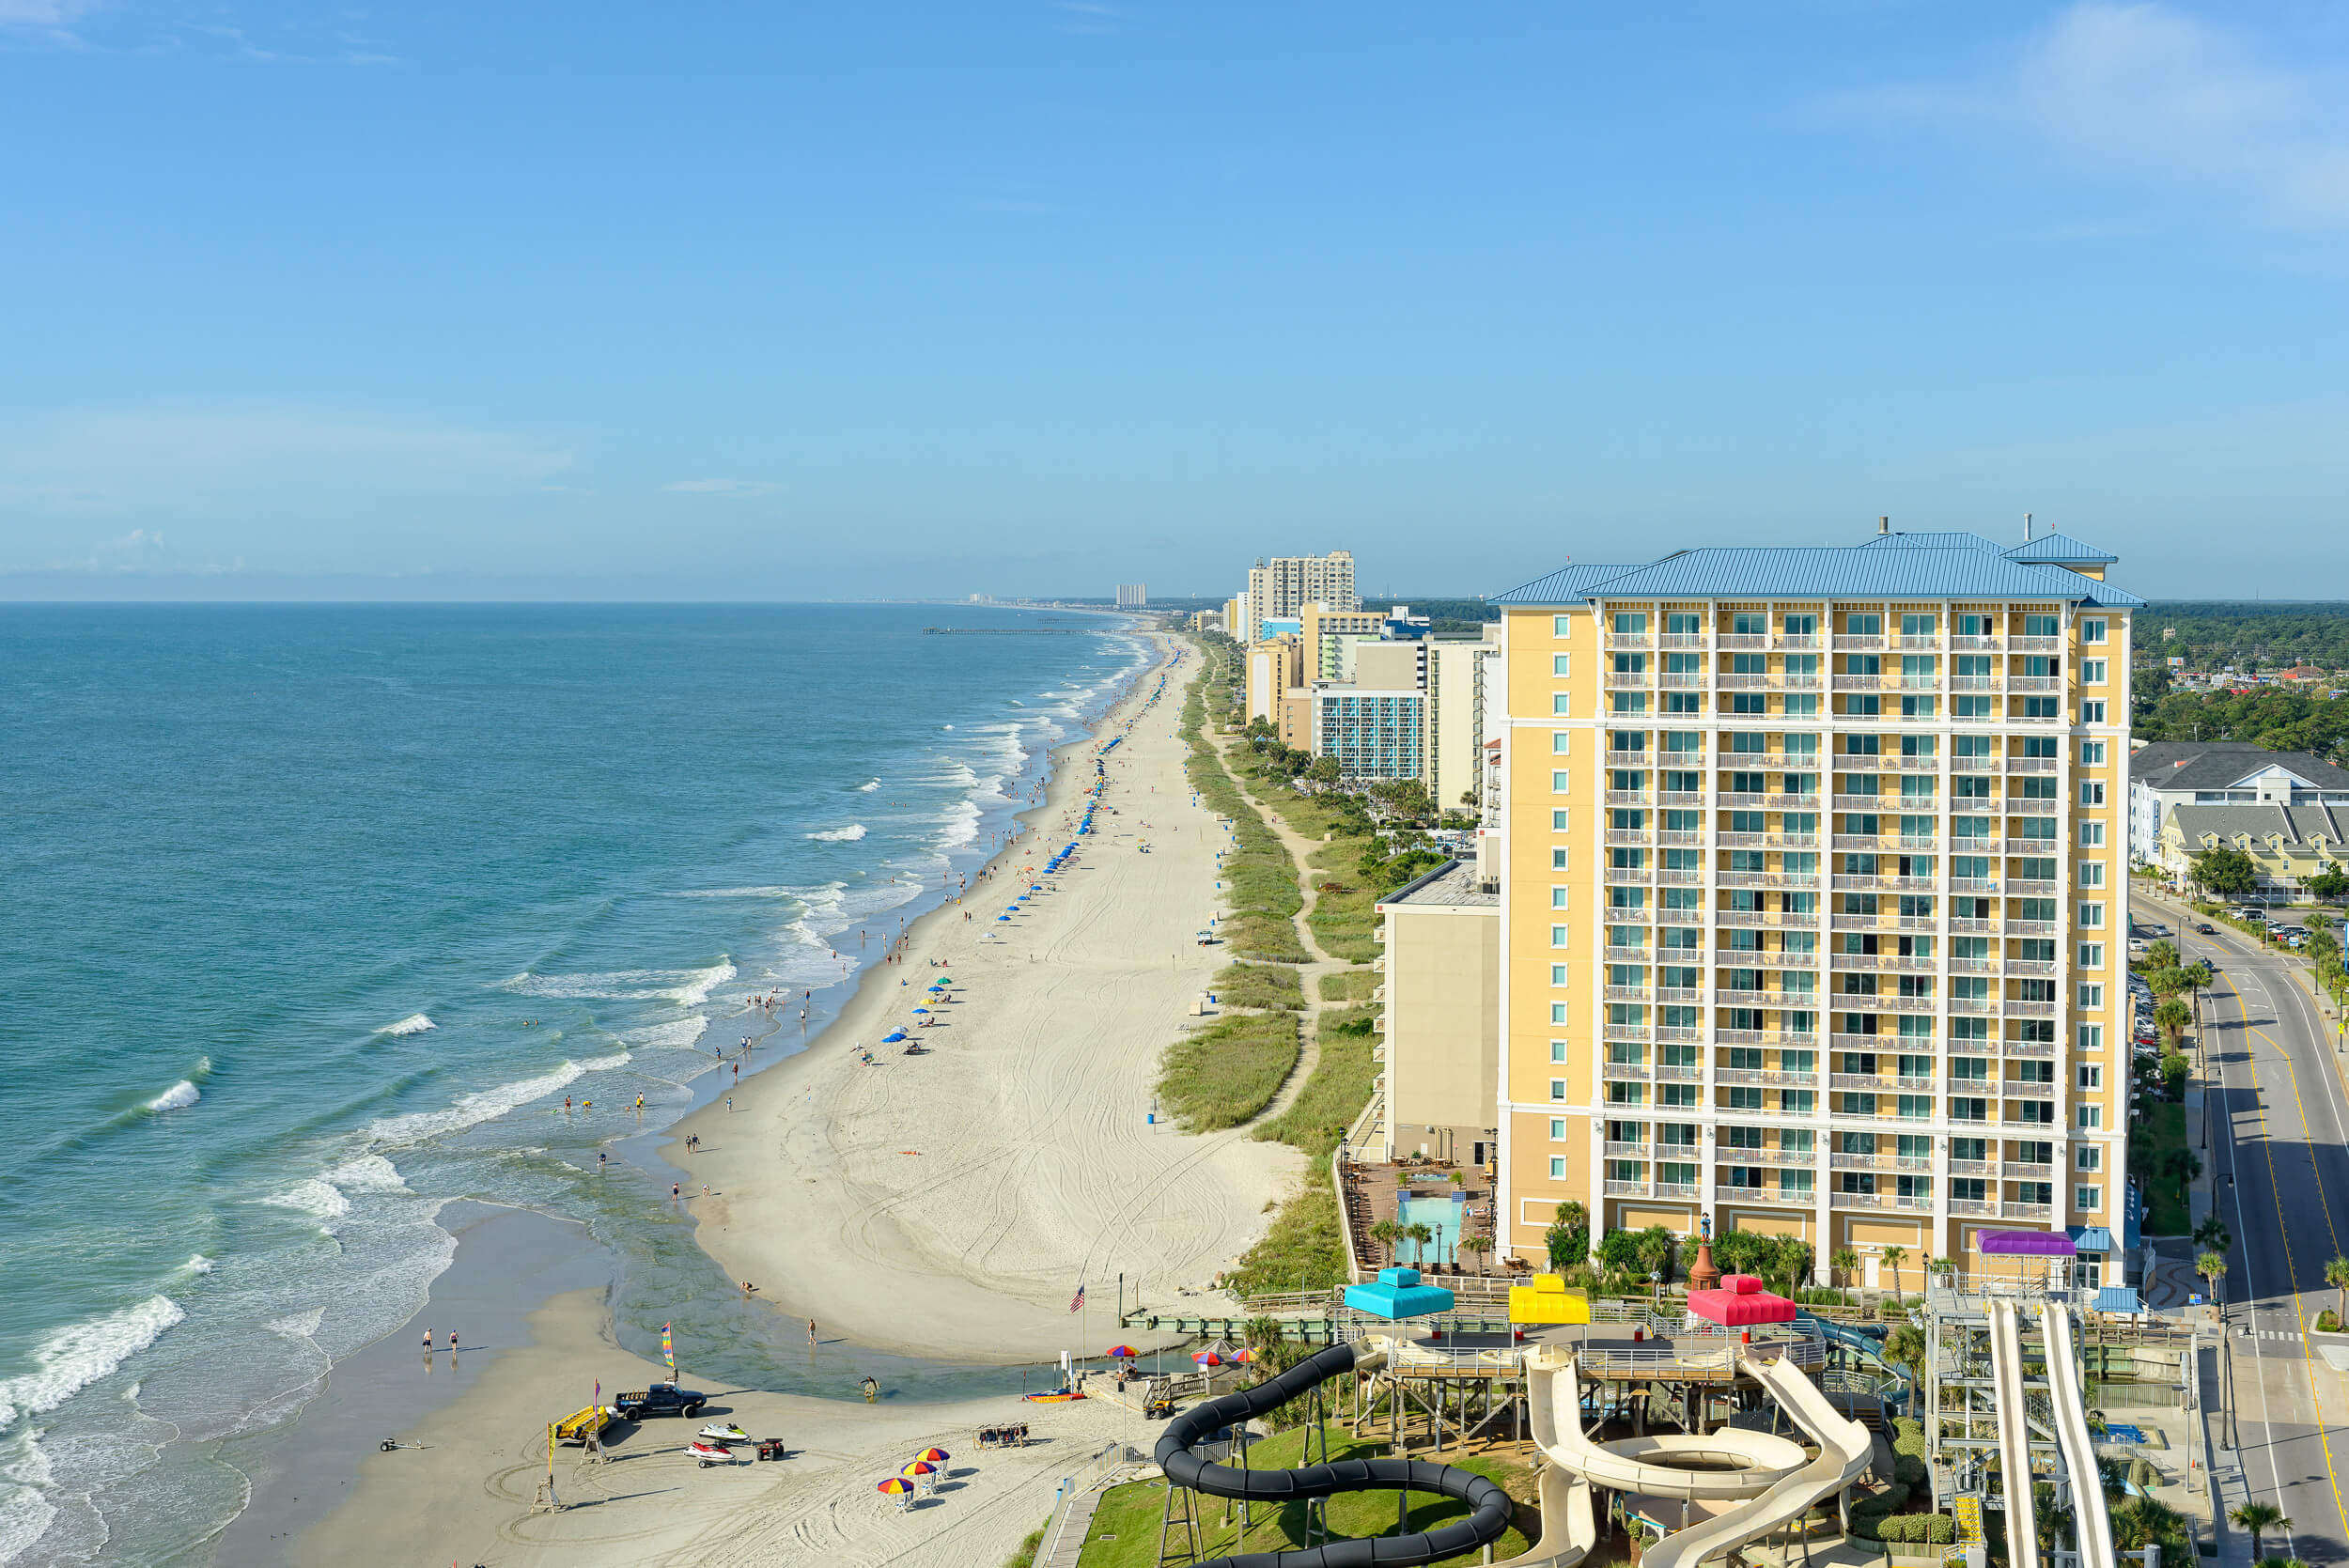 Beachfront resort adjacent to Family Kingdom Amusement Park | Westgate Myrtle Beach Oceanfront Resort